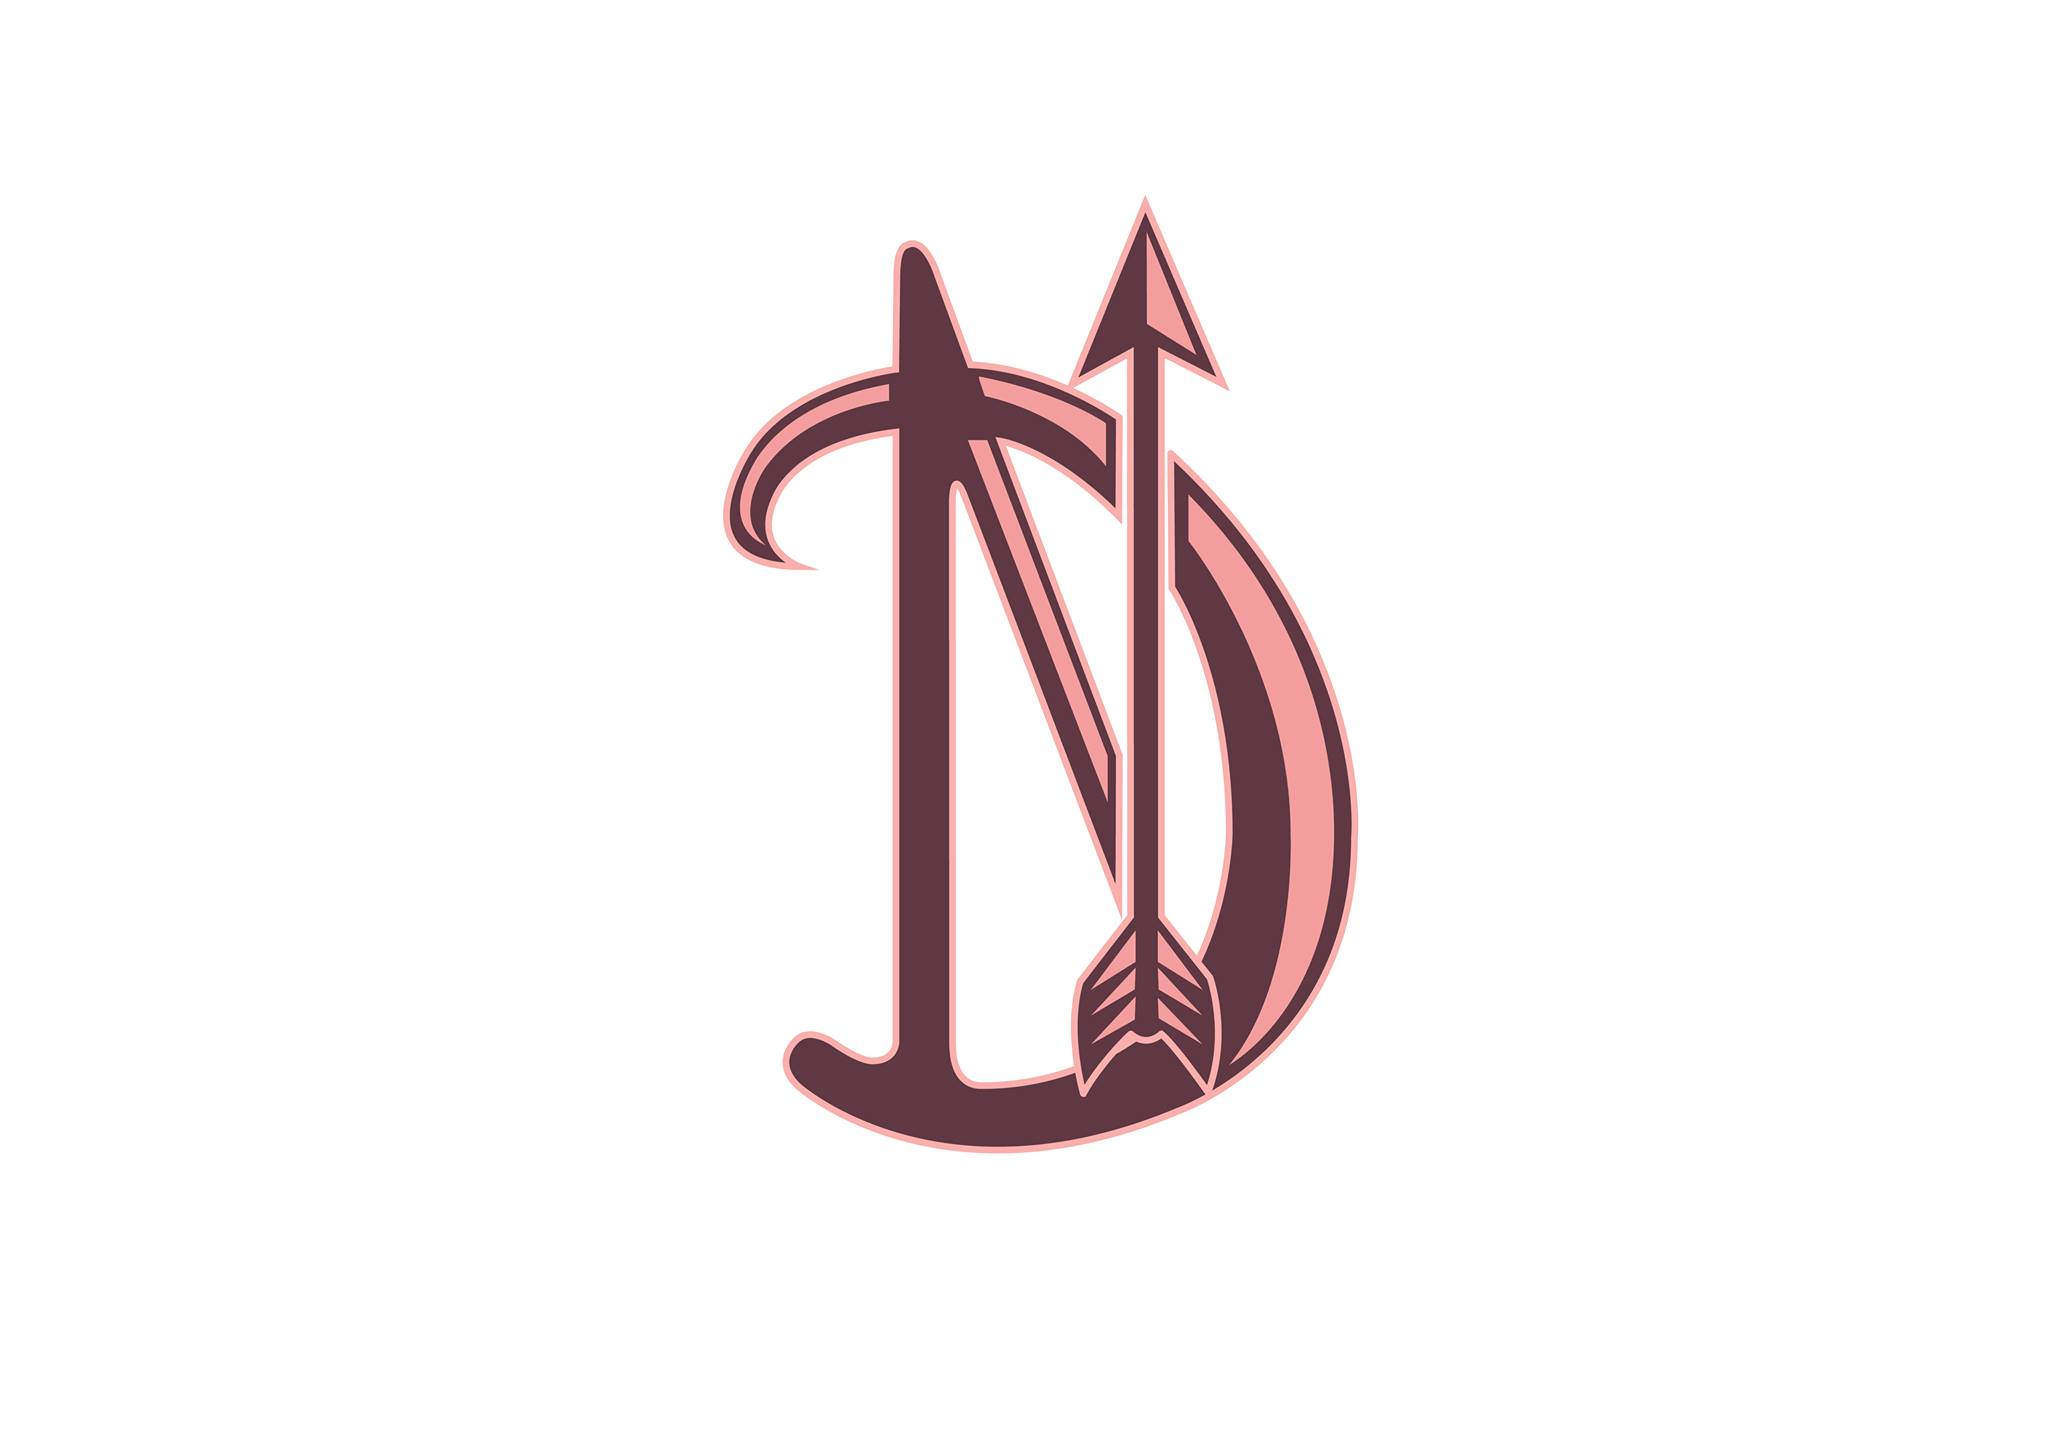 Du North Designs Ltd.